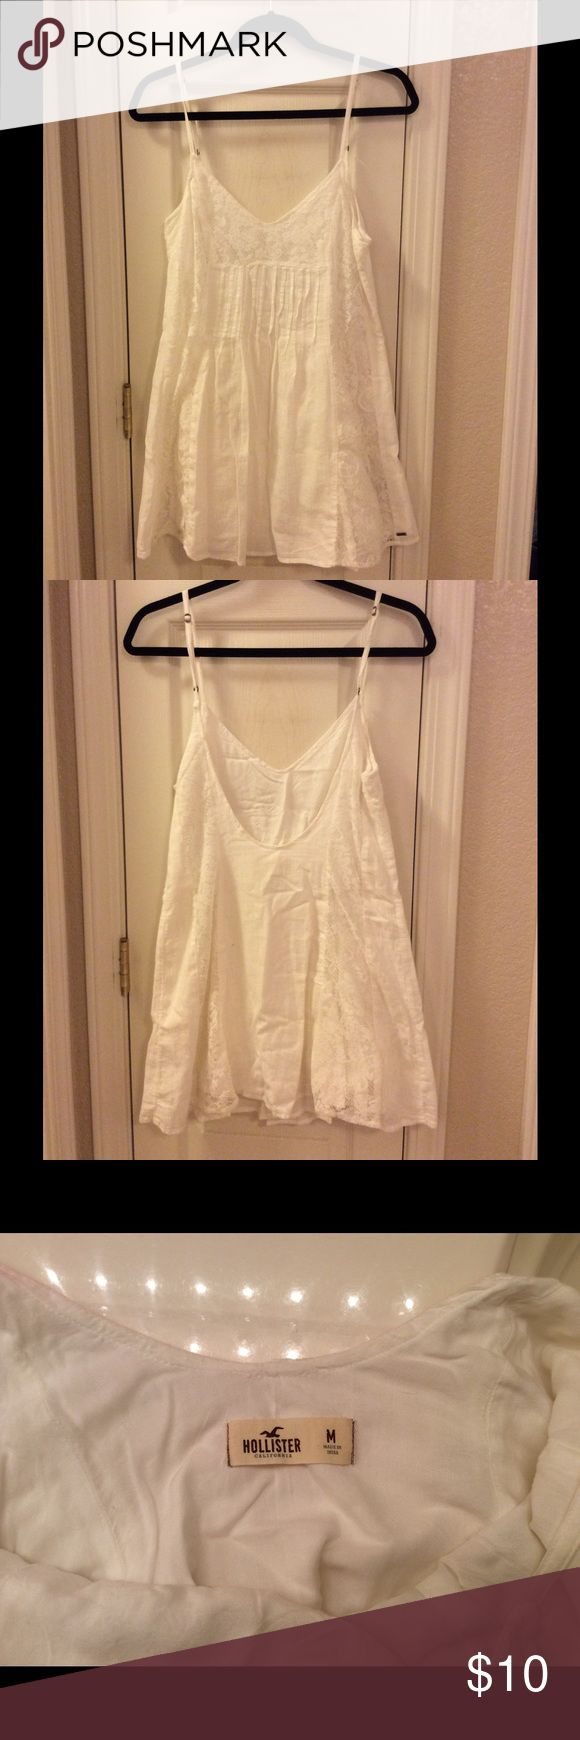 White Hollister dress White Hollister dress with lace, low back, and adjustable straps. Size Medium, sort of short but is really cute paired with cowboy boots! Hollister Dresses Mini